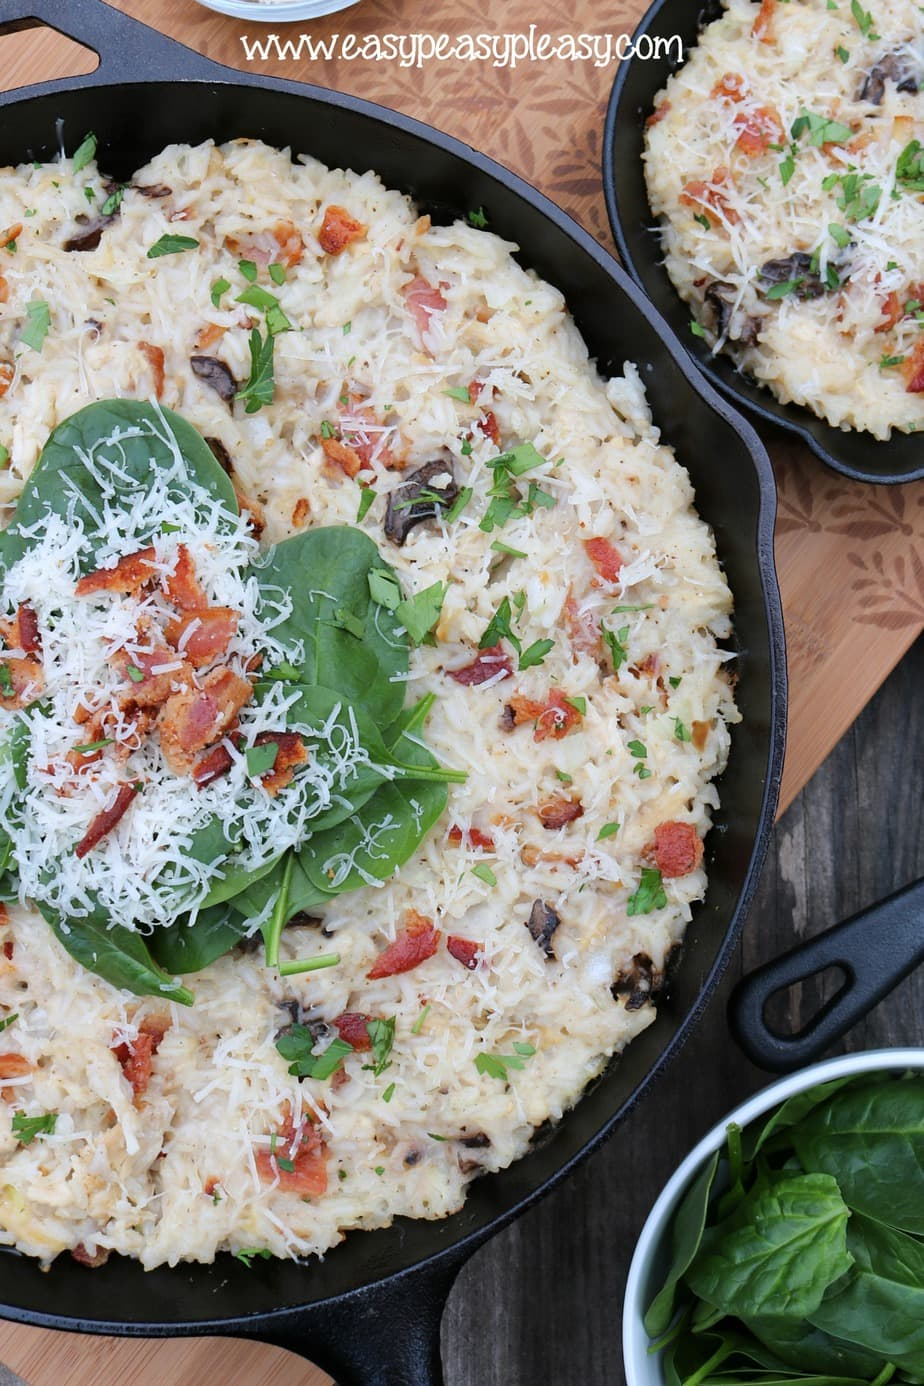 Cheesy Chicken and Bacon Rice Casserole at easypeasypleasy.com